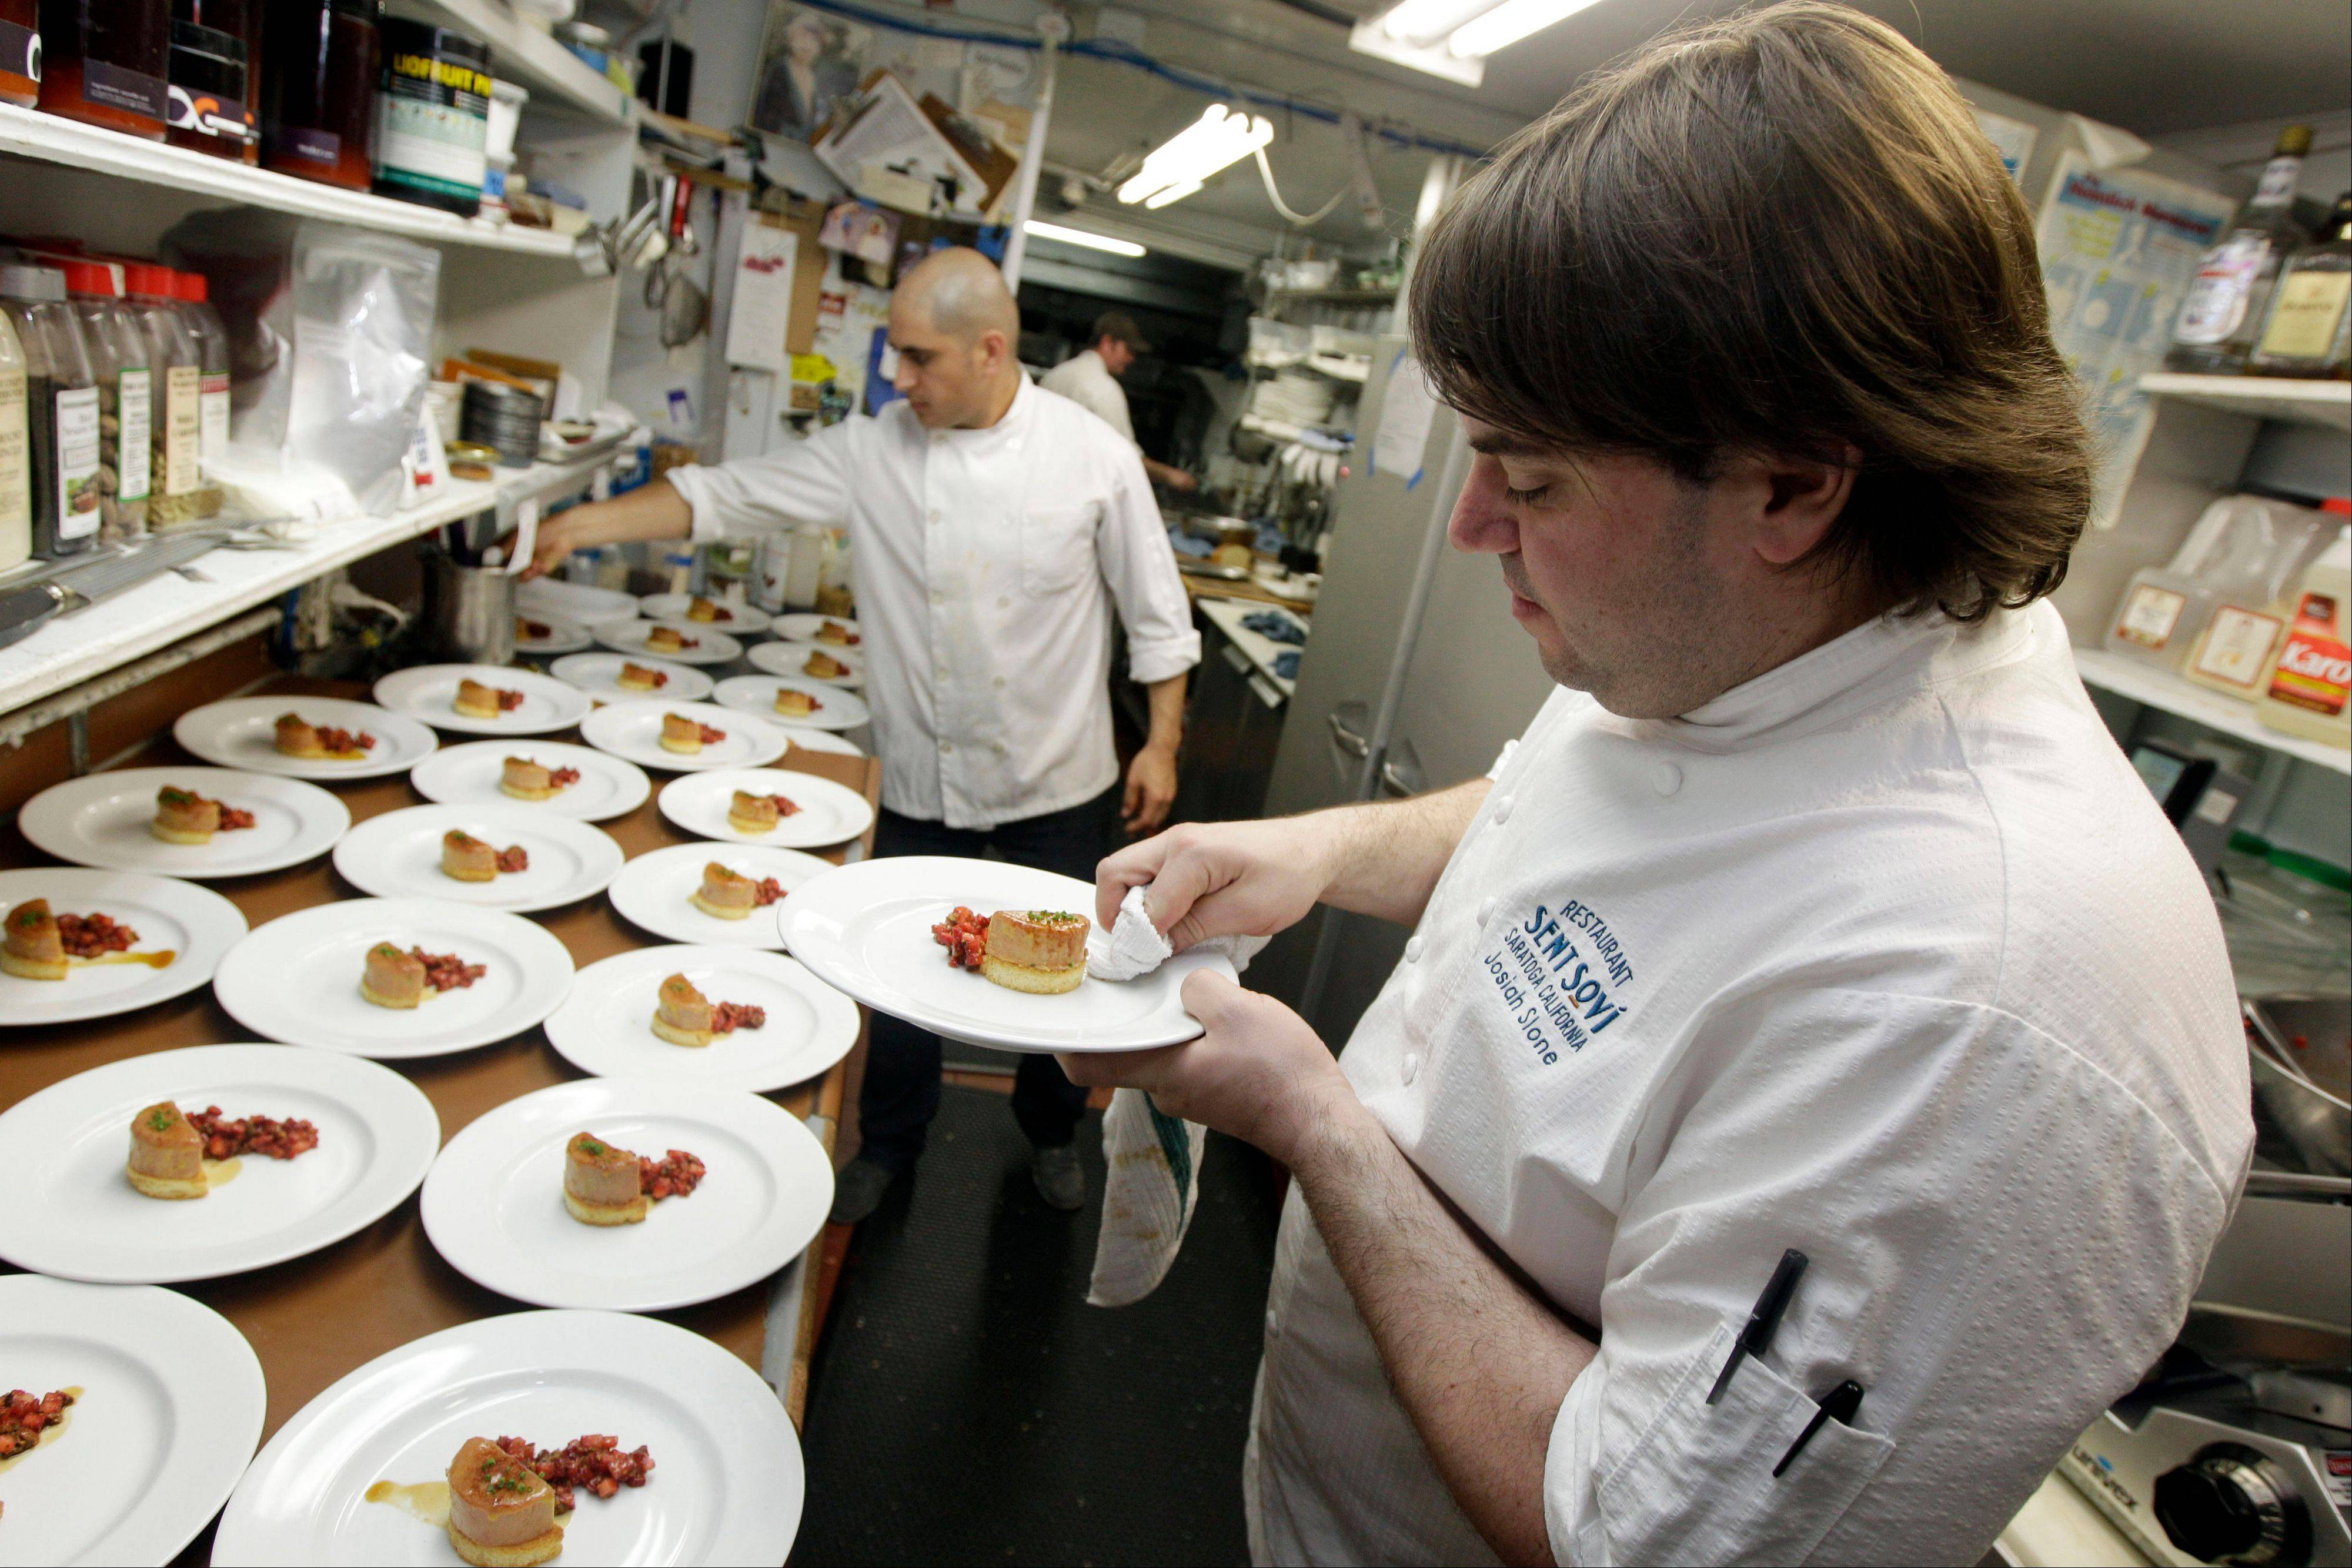 Chef and owner Josiah Slone, right, prepares a foie gras dish at the Sent Sovi restaurant in Saratoga, Calif.